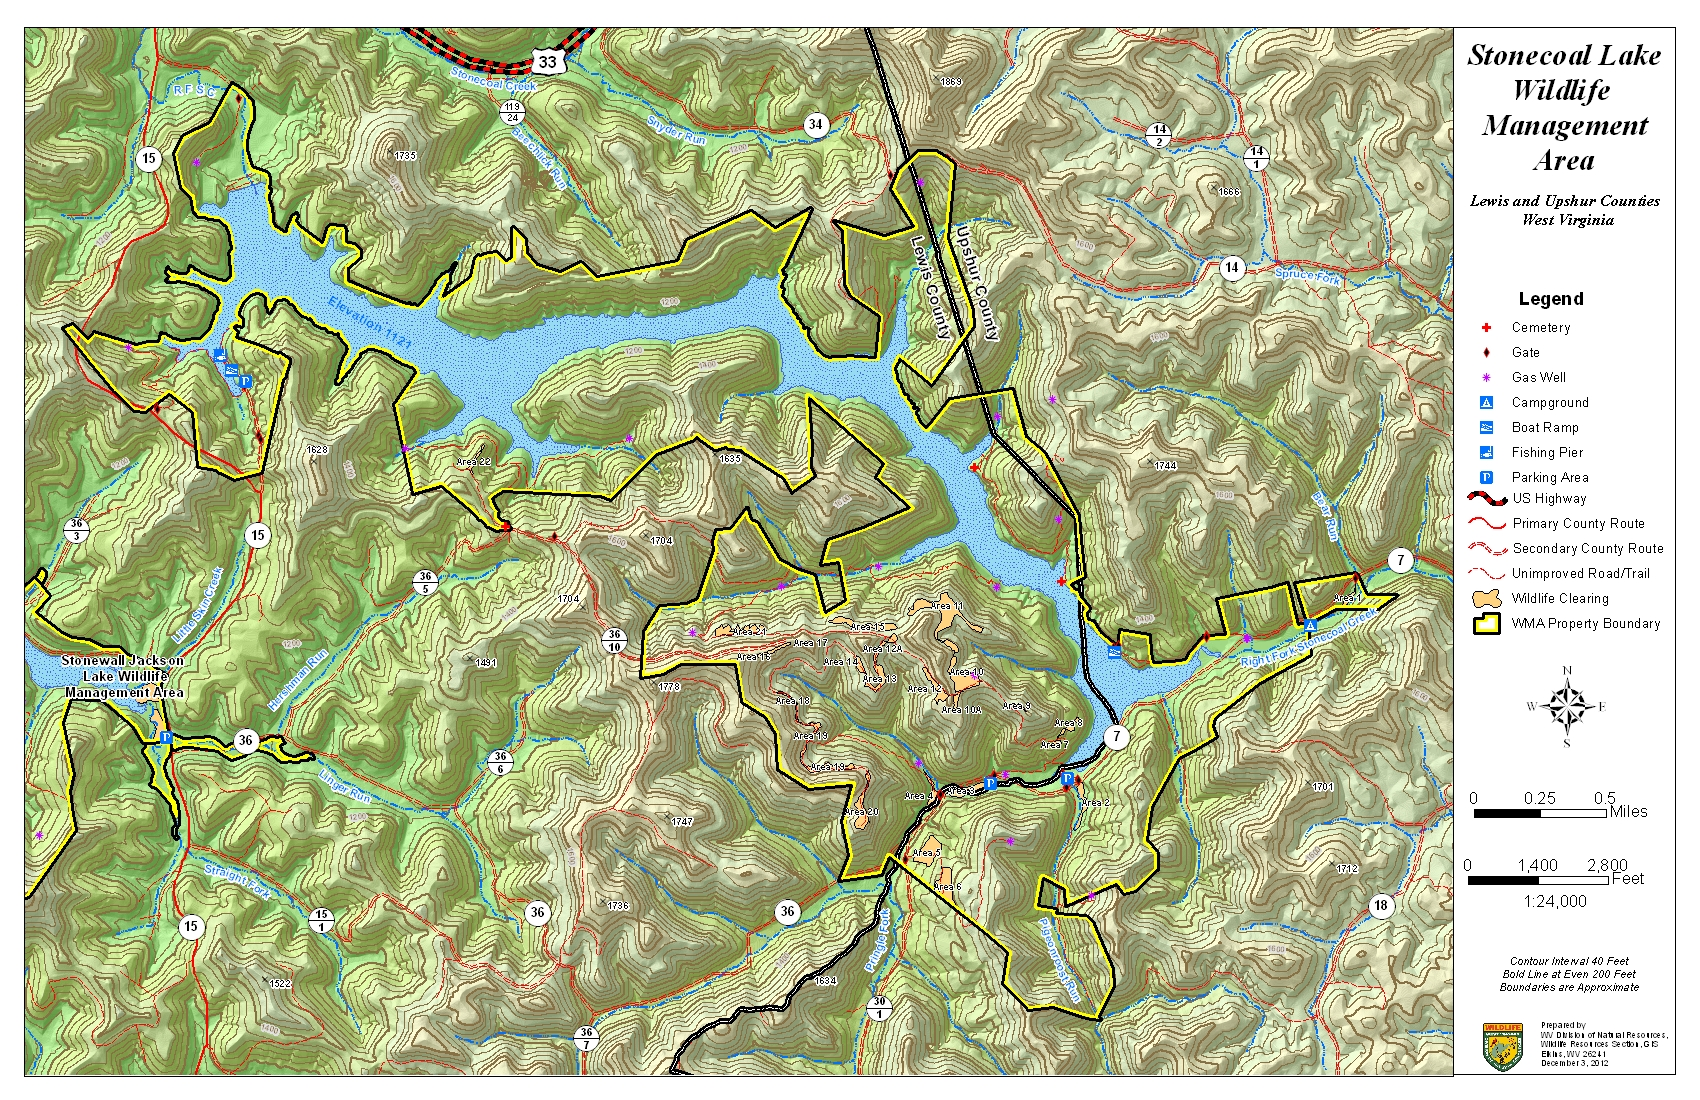 West Virginia DNR WMA Map Project - Maps of wv